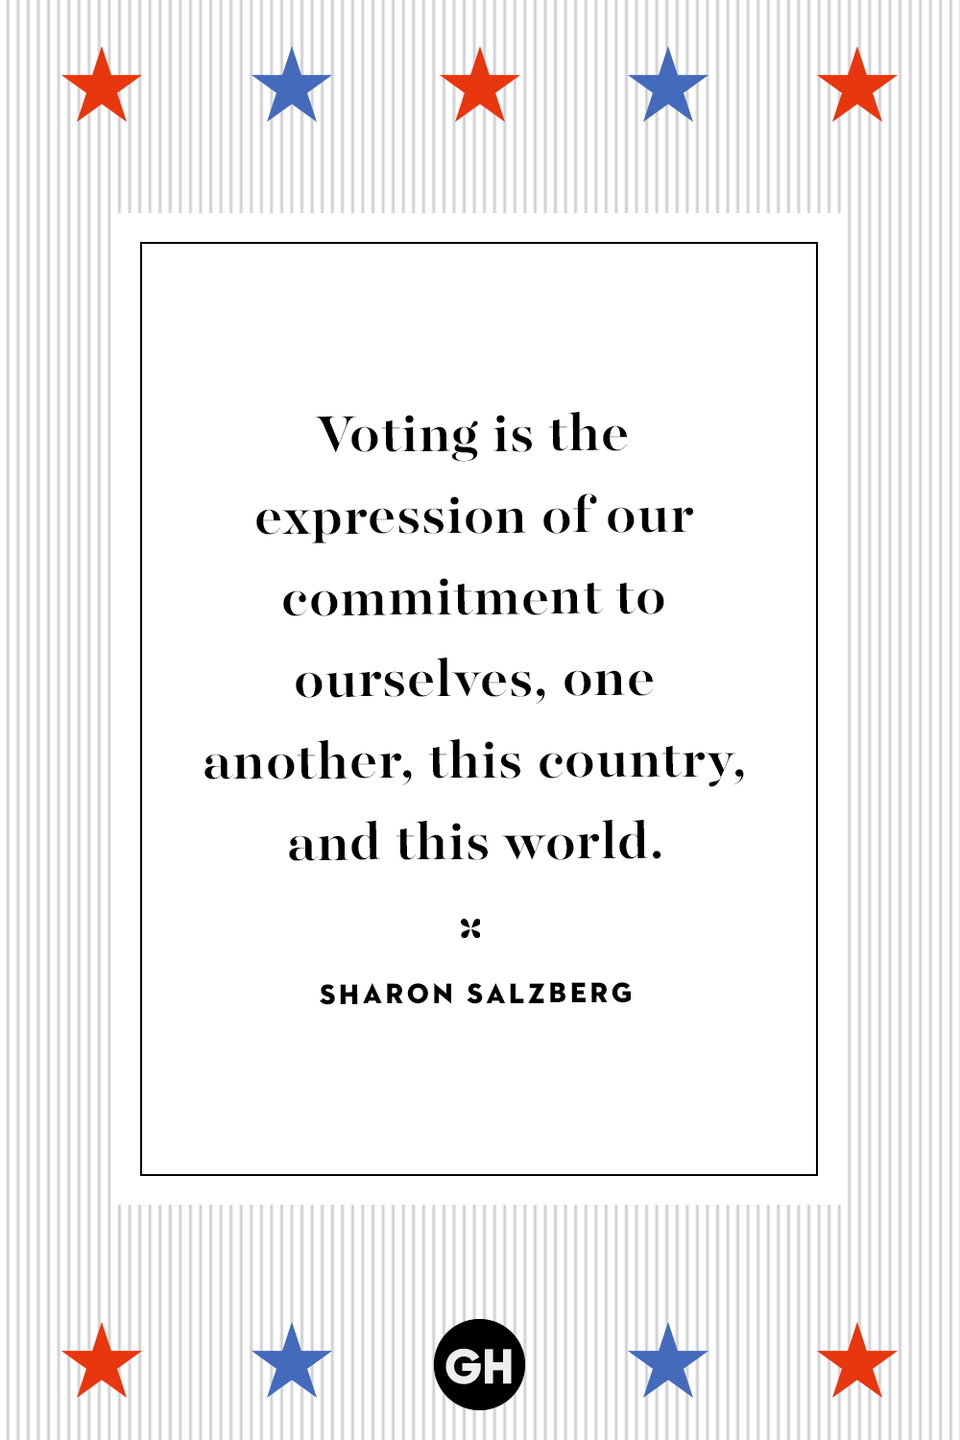 <p>Voting is the expression of our commitment to ourselves, one another, this country, and this world.</p>